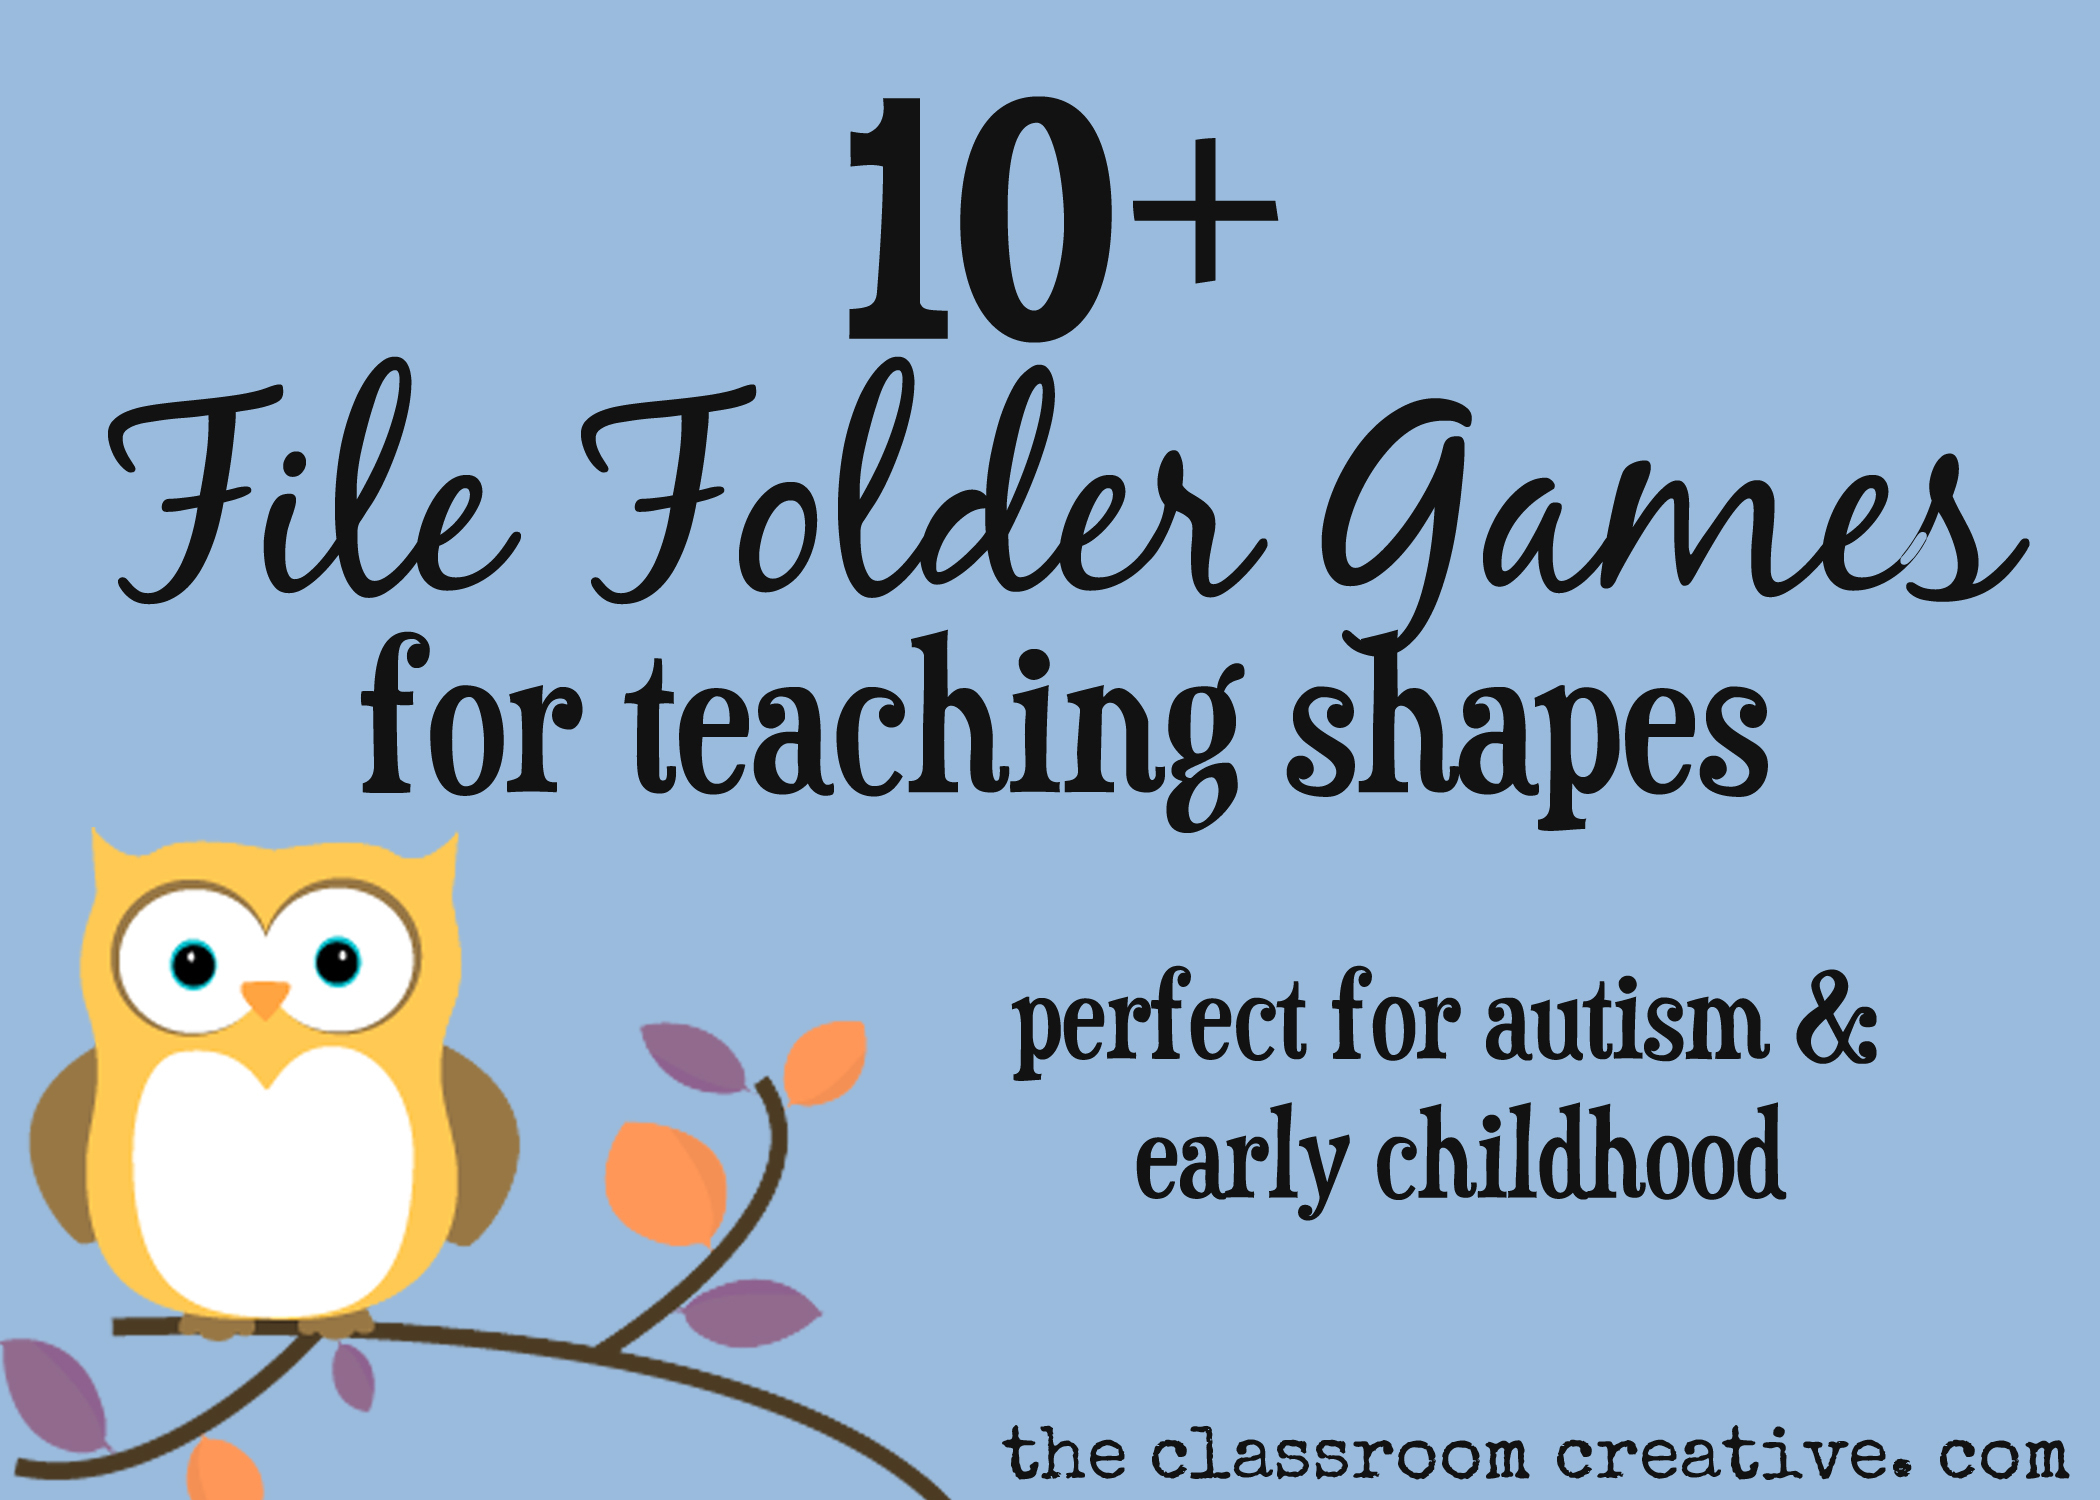 File Folder Games For Teaching Shapes - Free Printable Fall File Folder Games